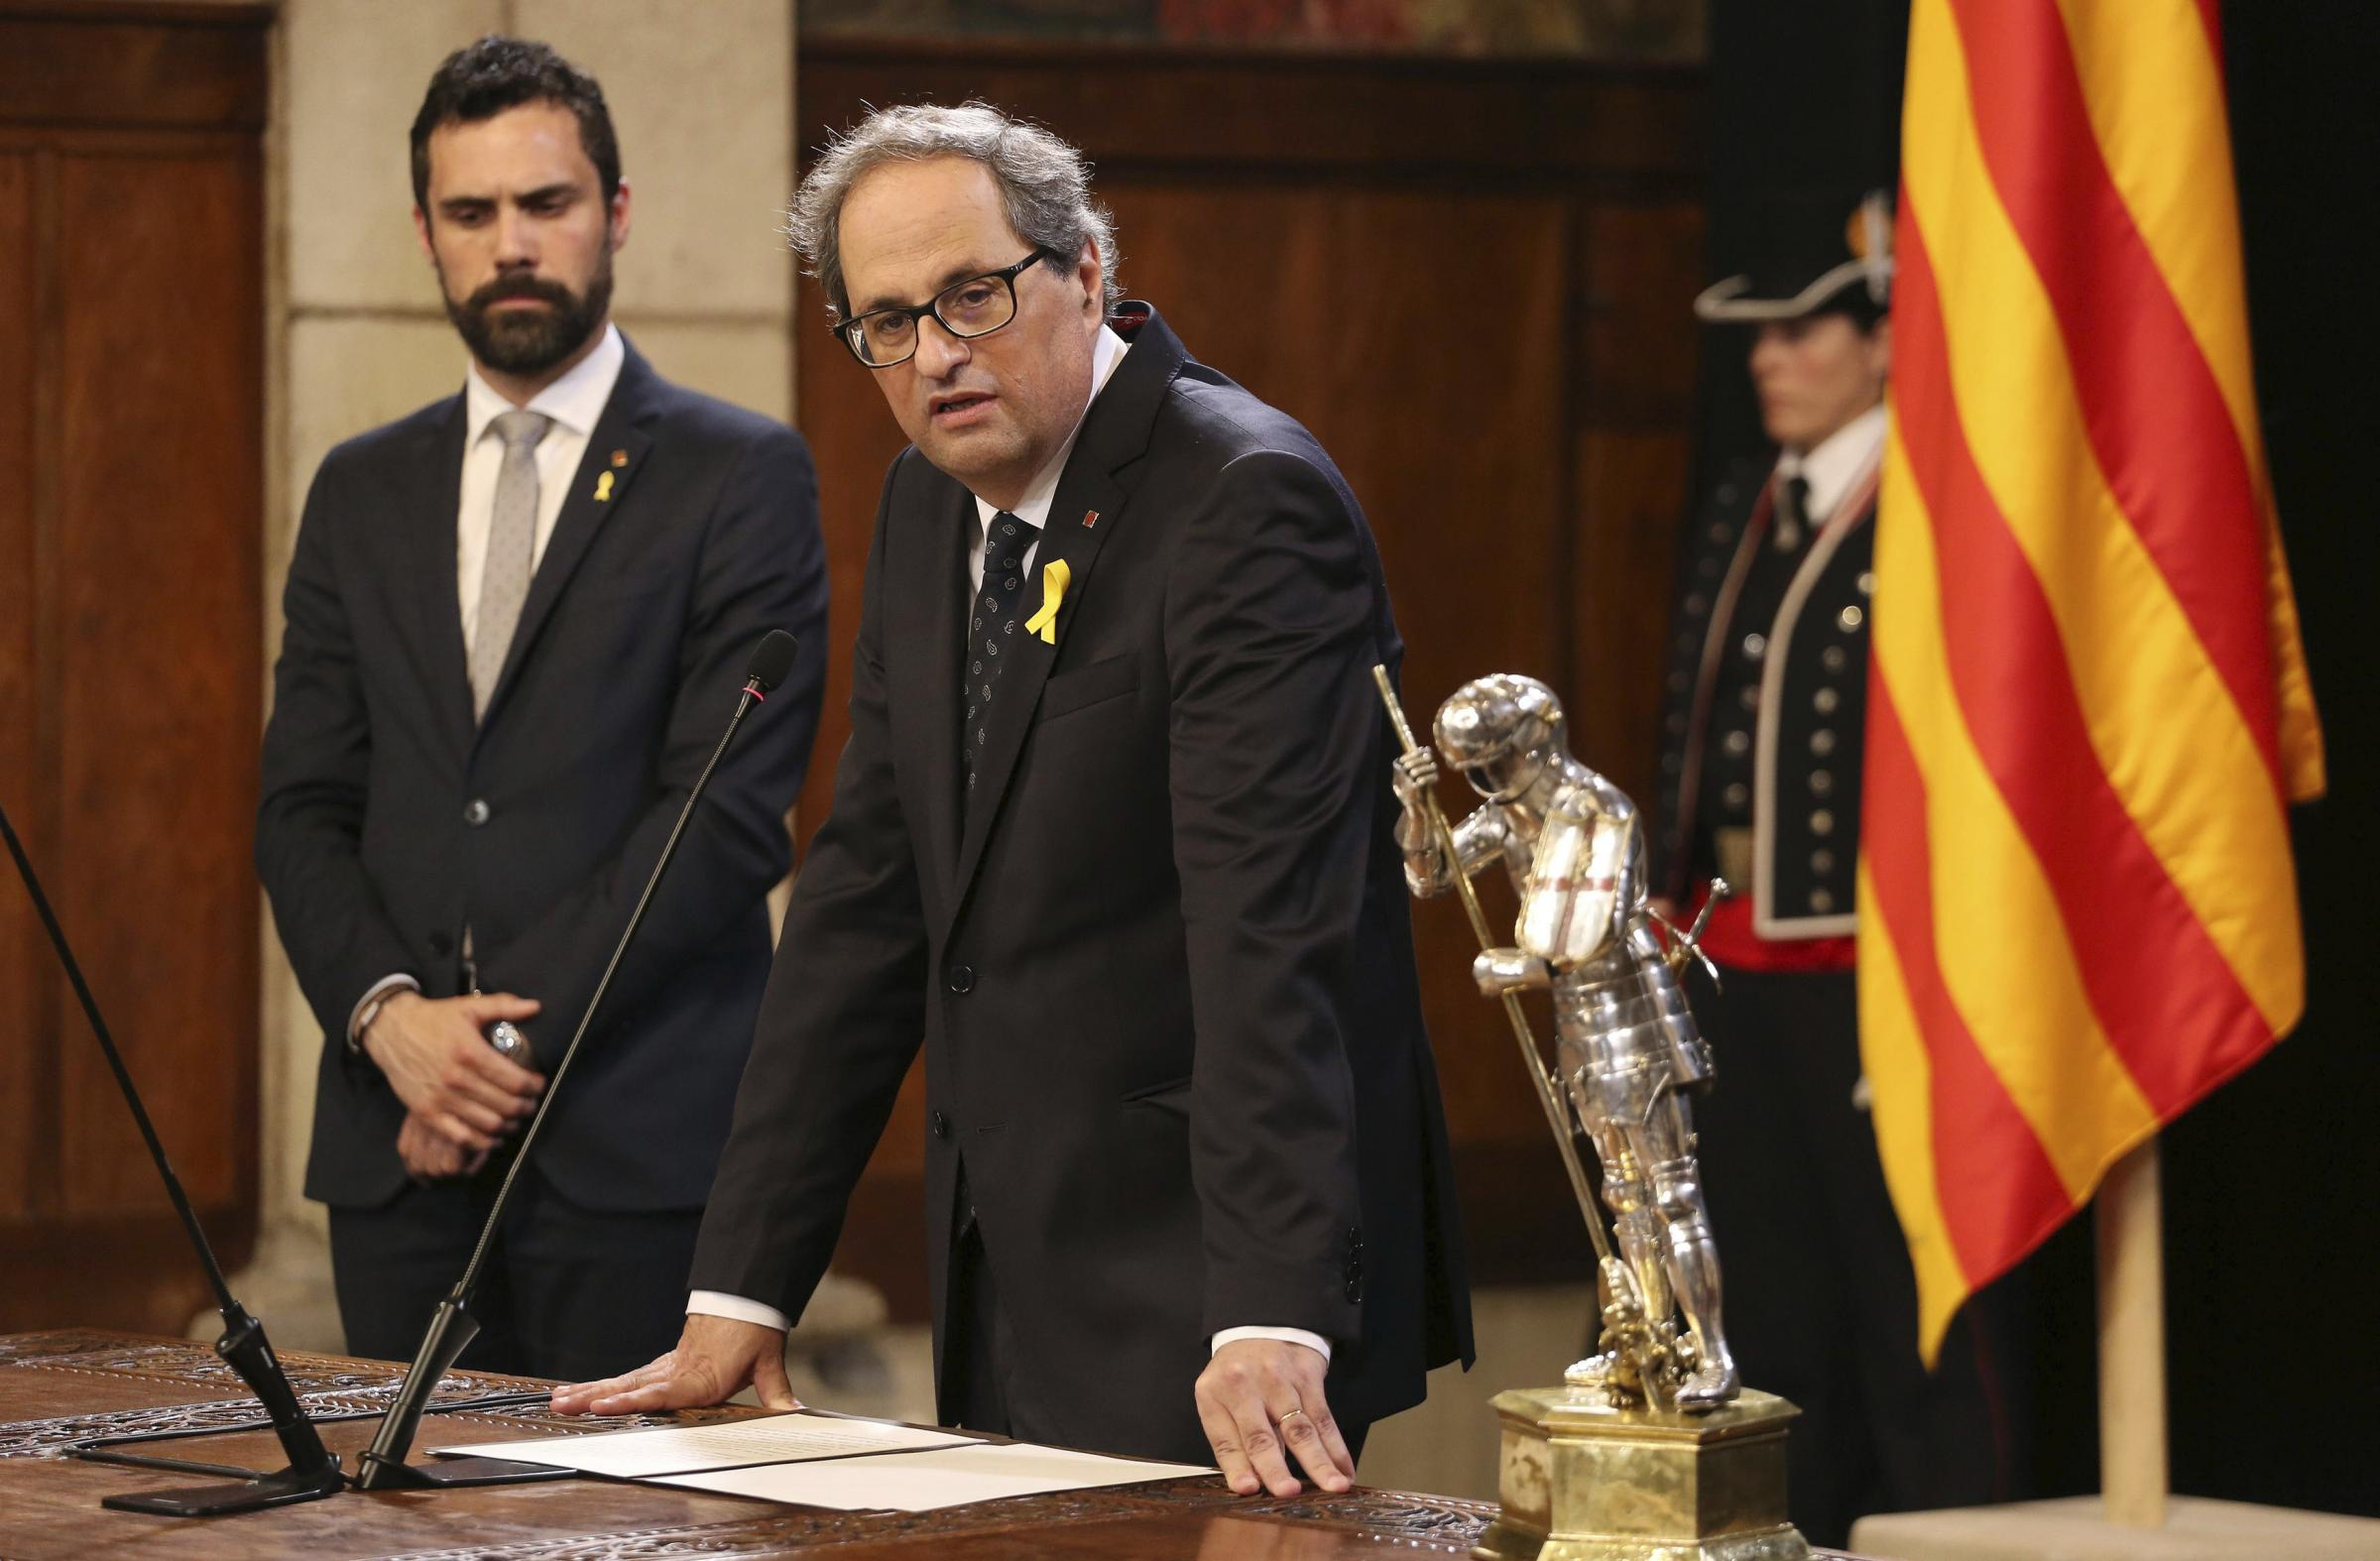 WATCH: Catalan President Quim Torra talks about historic meeting with Nicola Sturgeon